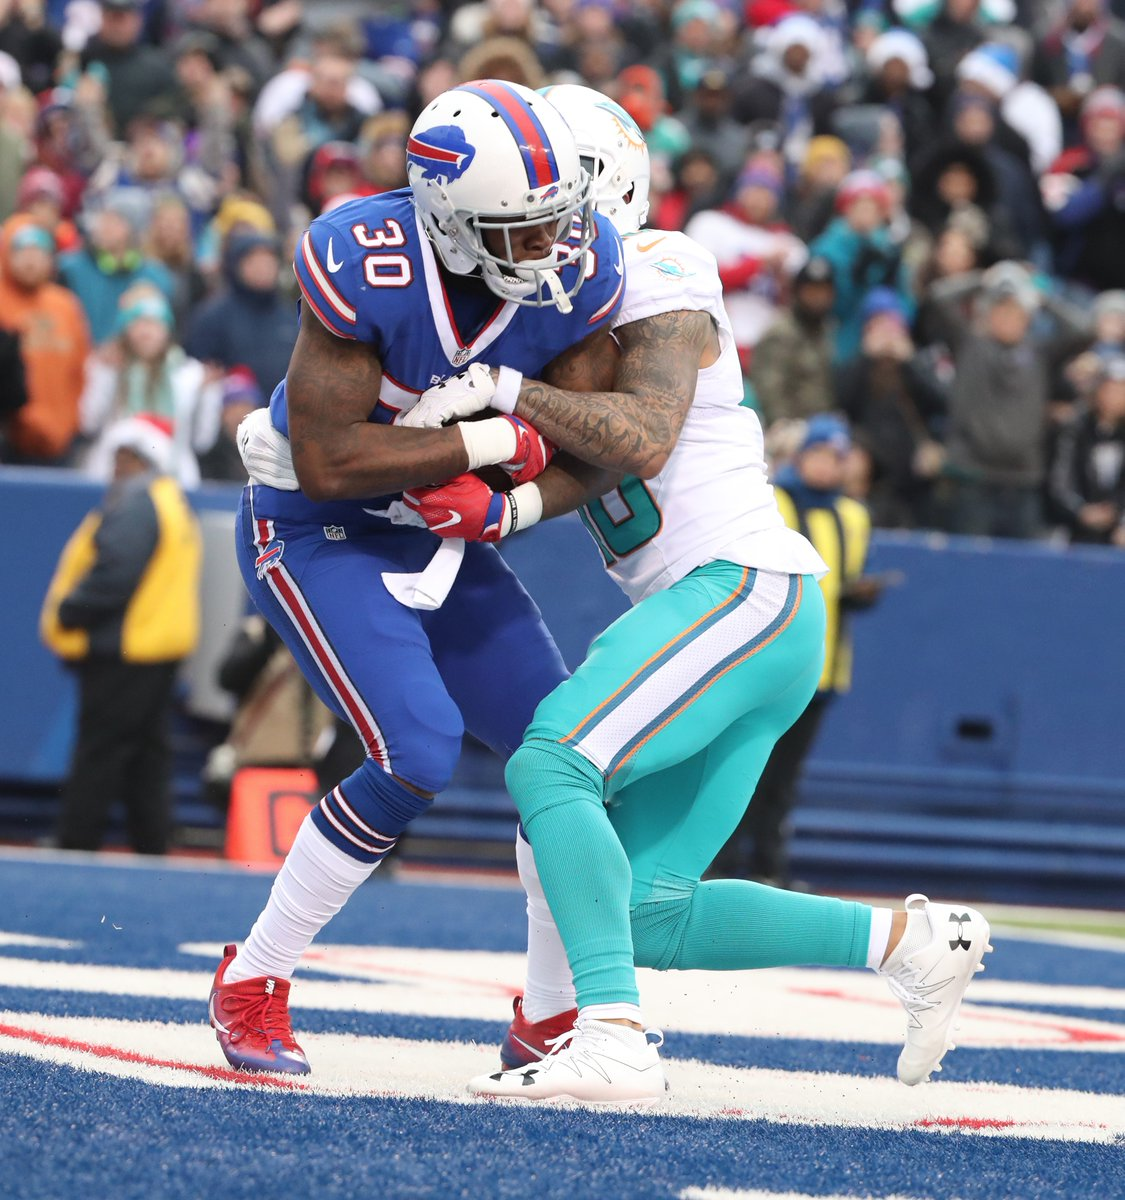 Corey White intercepts a Matt Moore pass in the second quarter of the Bills-Dolphins game on Dec. 24, 2016 (James P. McCoy/Buffalo News)